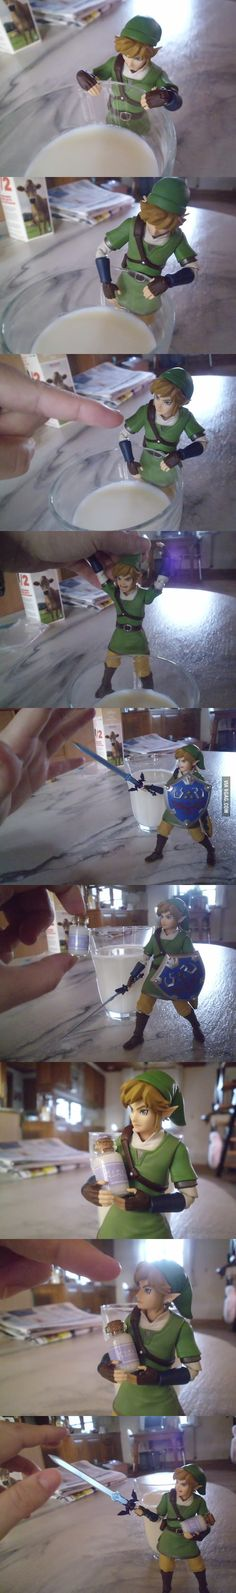 Figma Link milk stories (I'm sorry but this cracks me up XD)